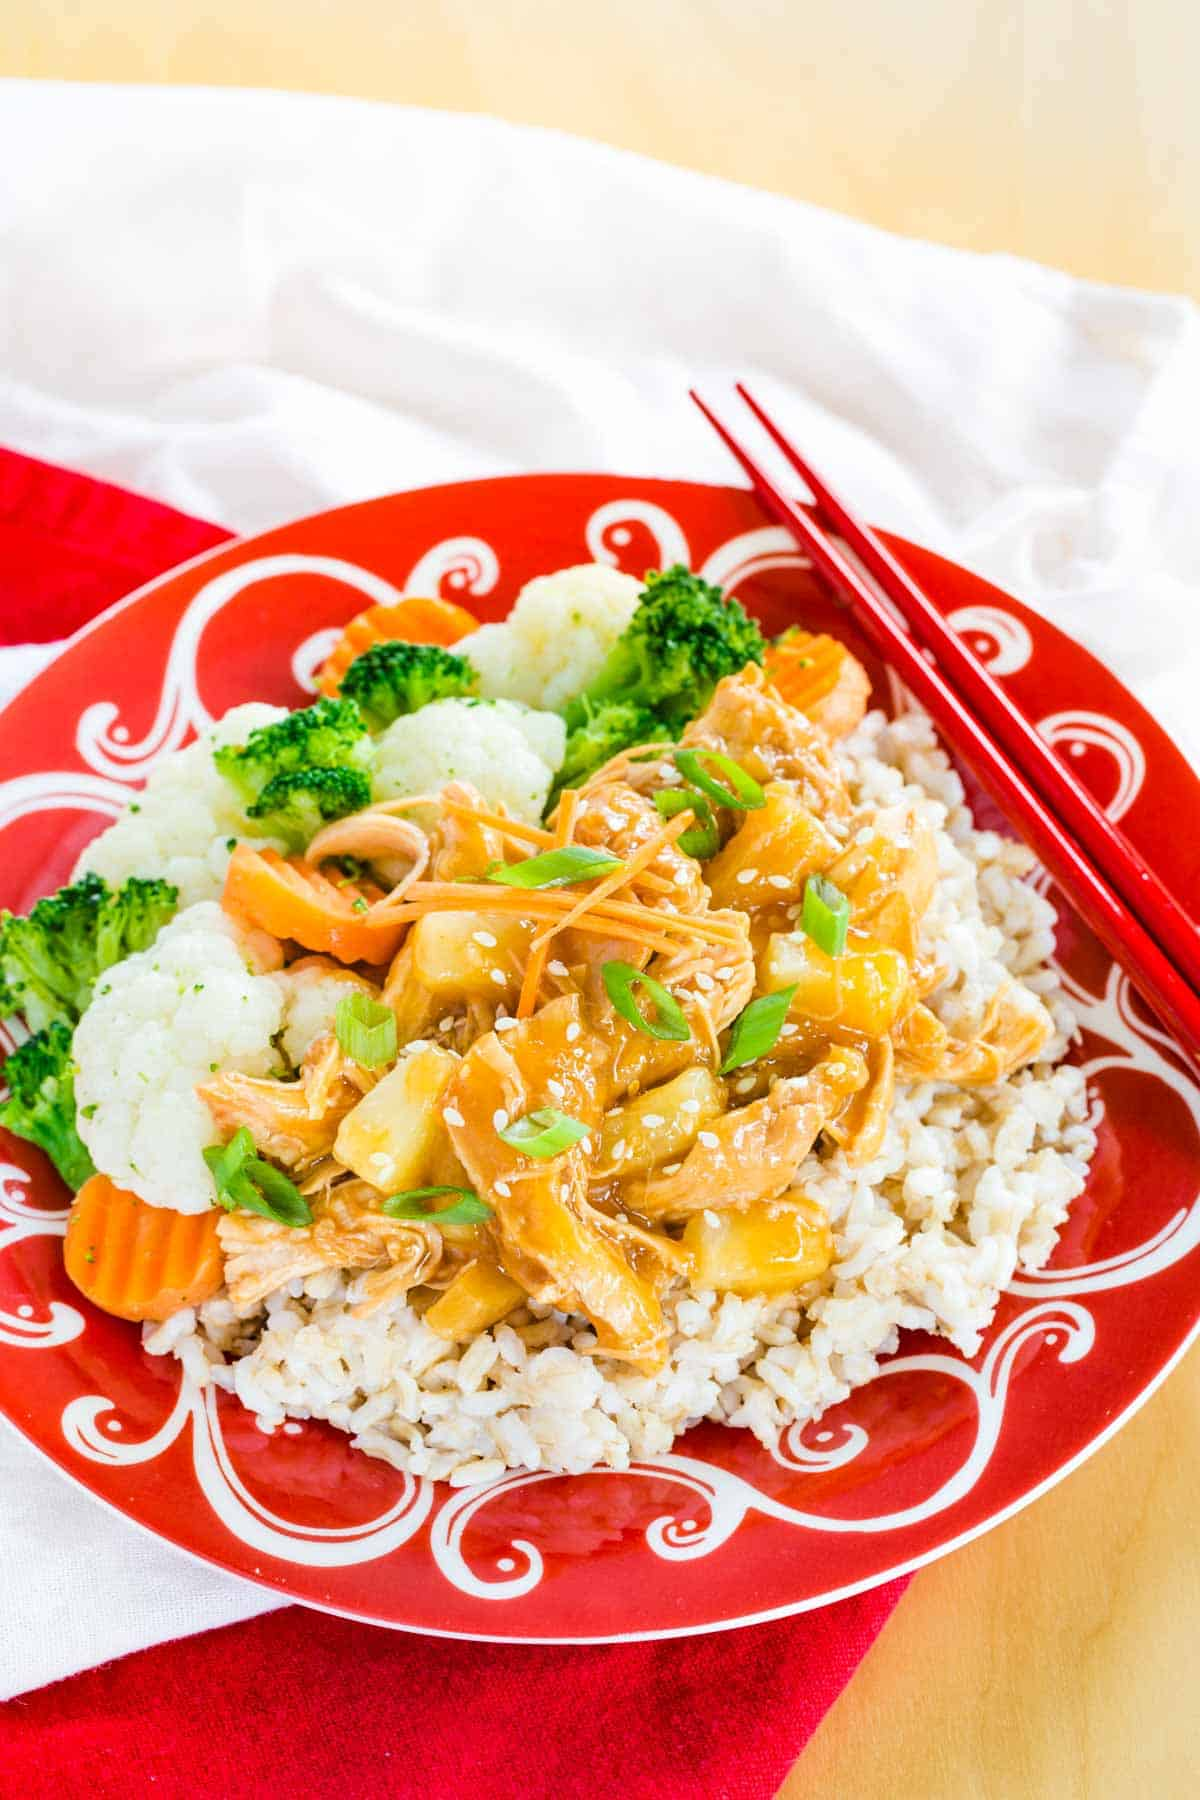 Instant Pot Pineapple Teriyaki Chicken on a plate with red chopsticks set on top of red and white cloth napkins